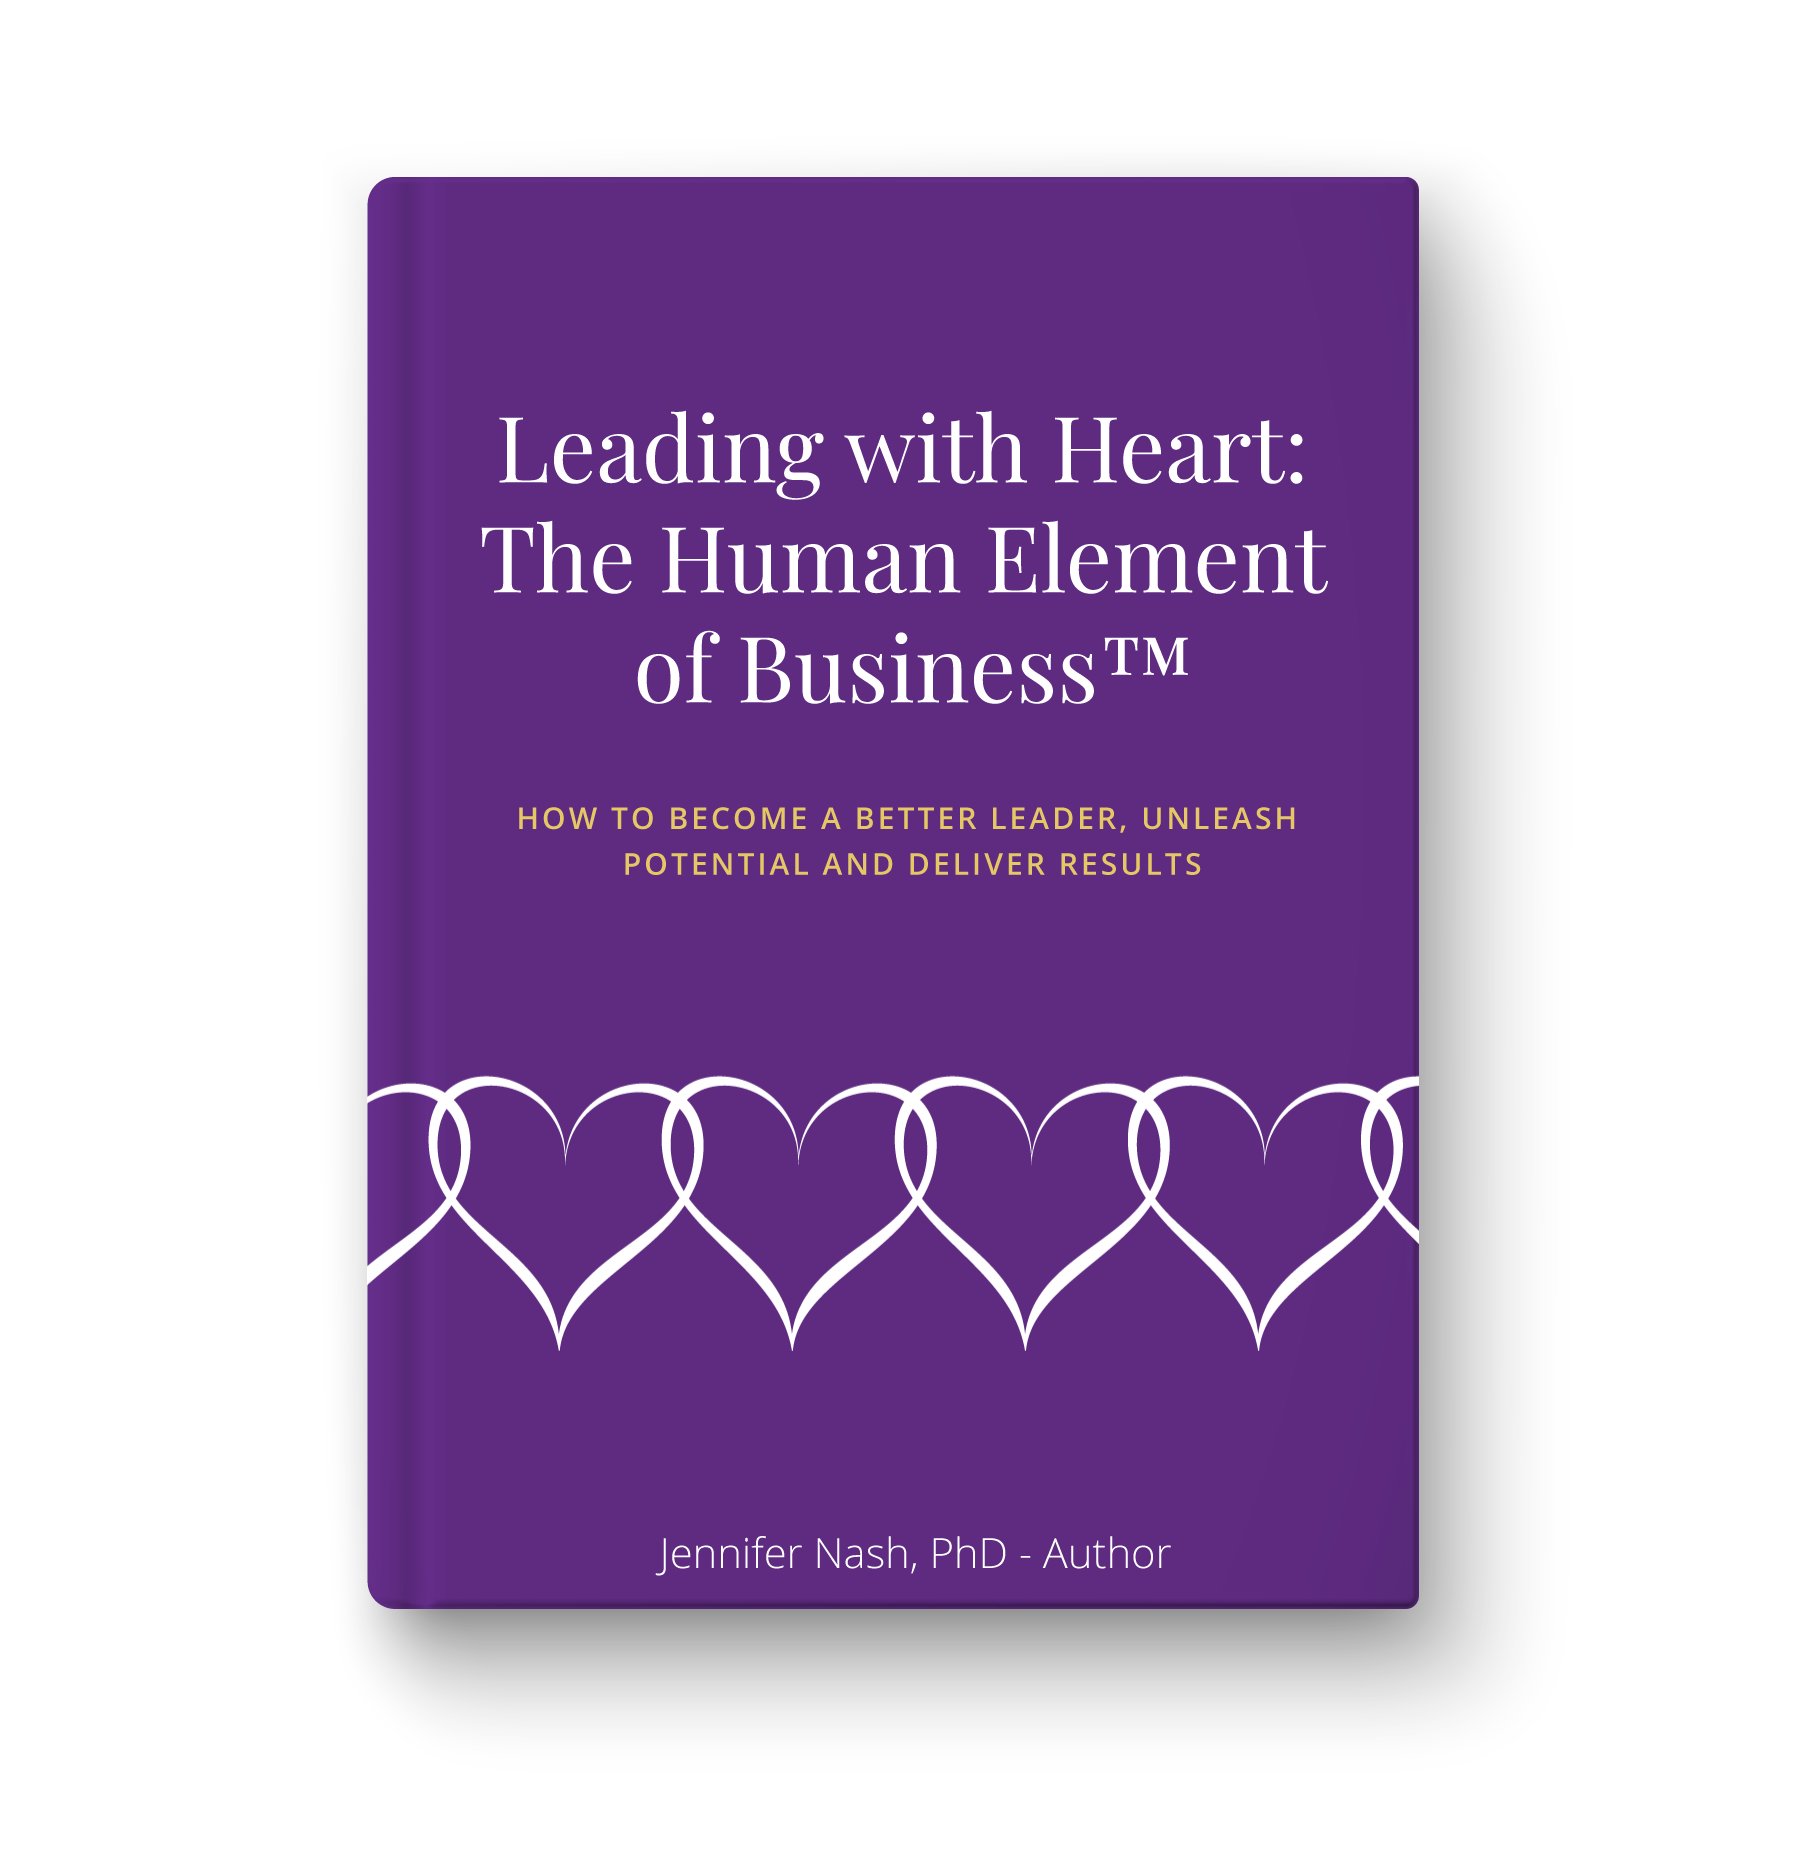 Leading with the Heart Book Cover-01